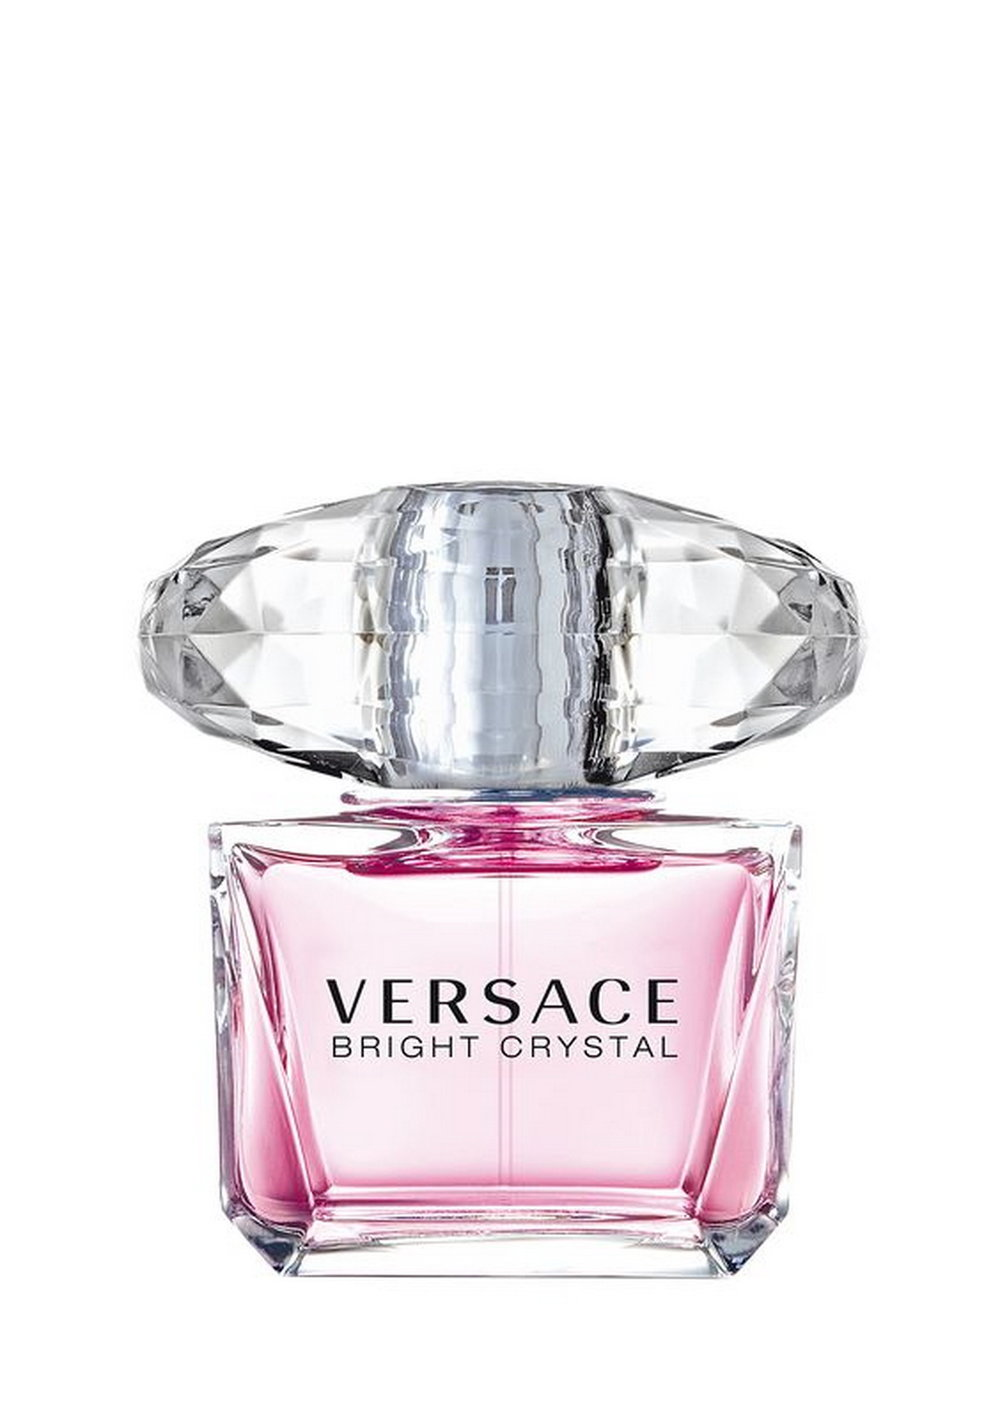 Top 10 Best Perfume For Women